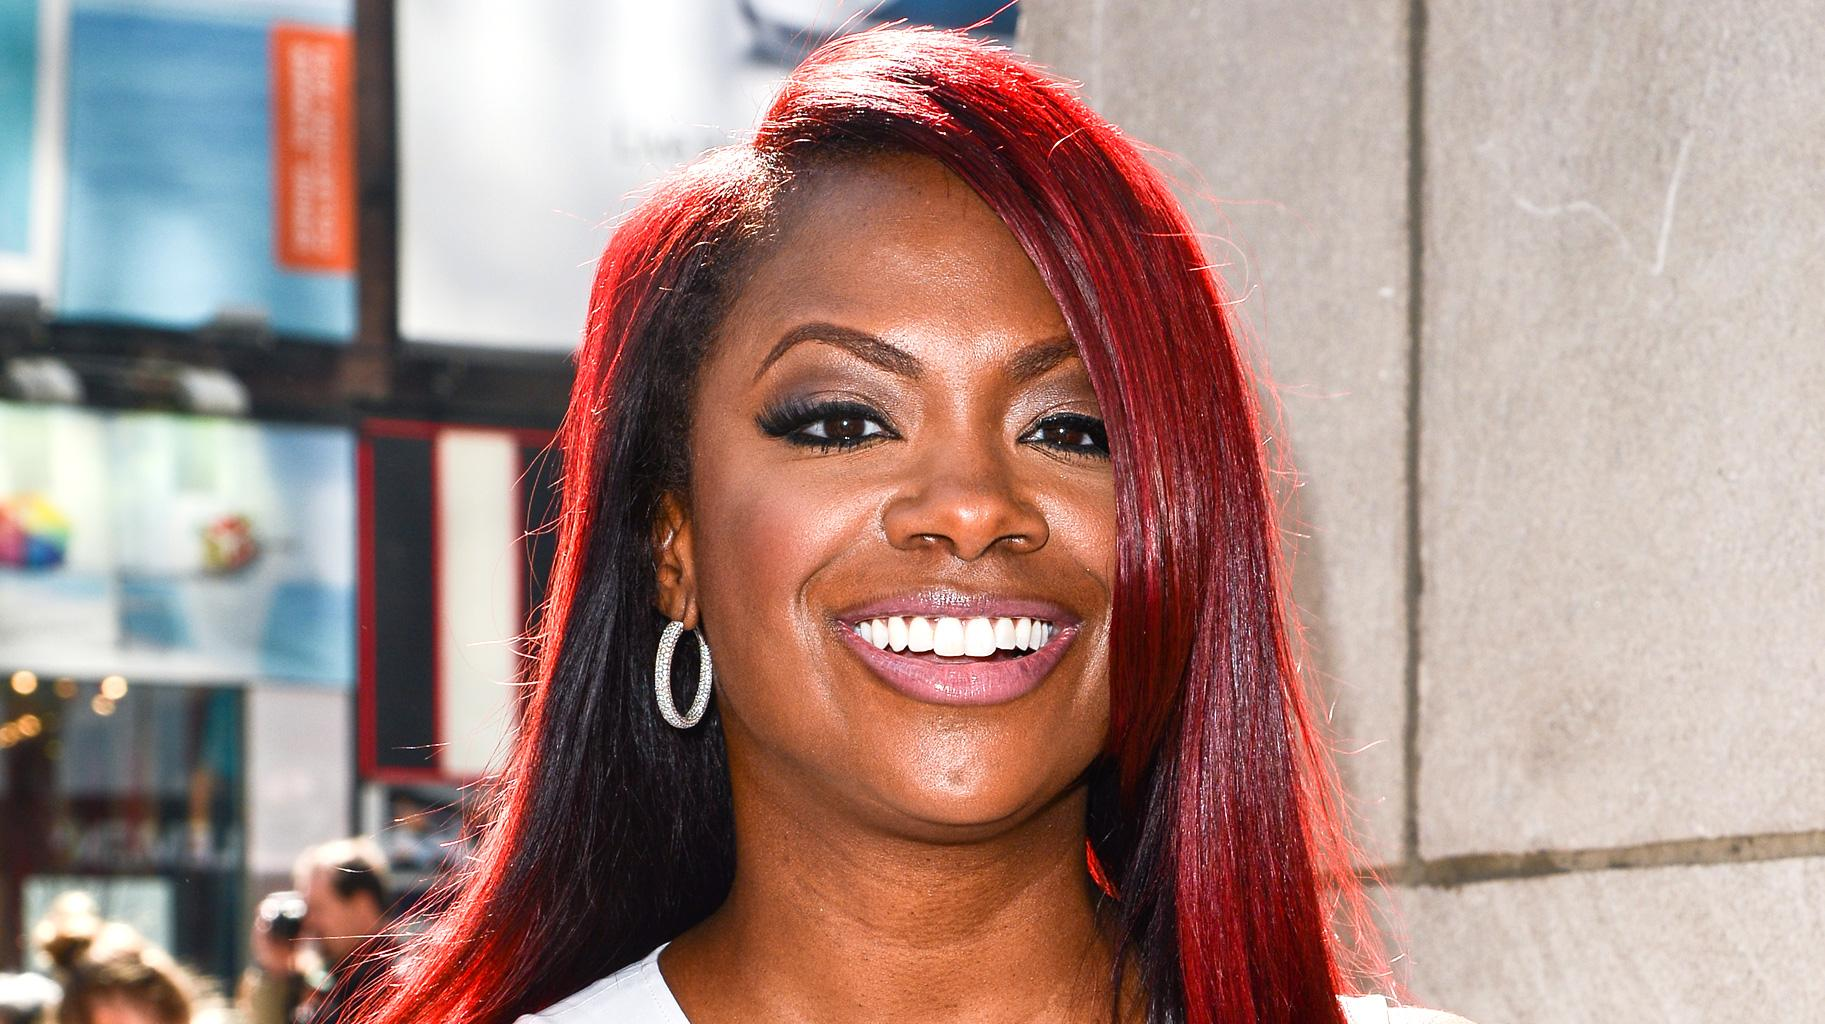 Kandi Burruss Is Making Boss Moves: She Just Bought Another Property